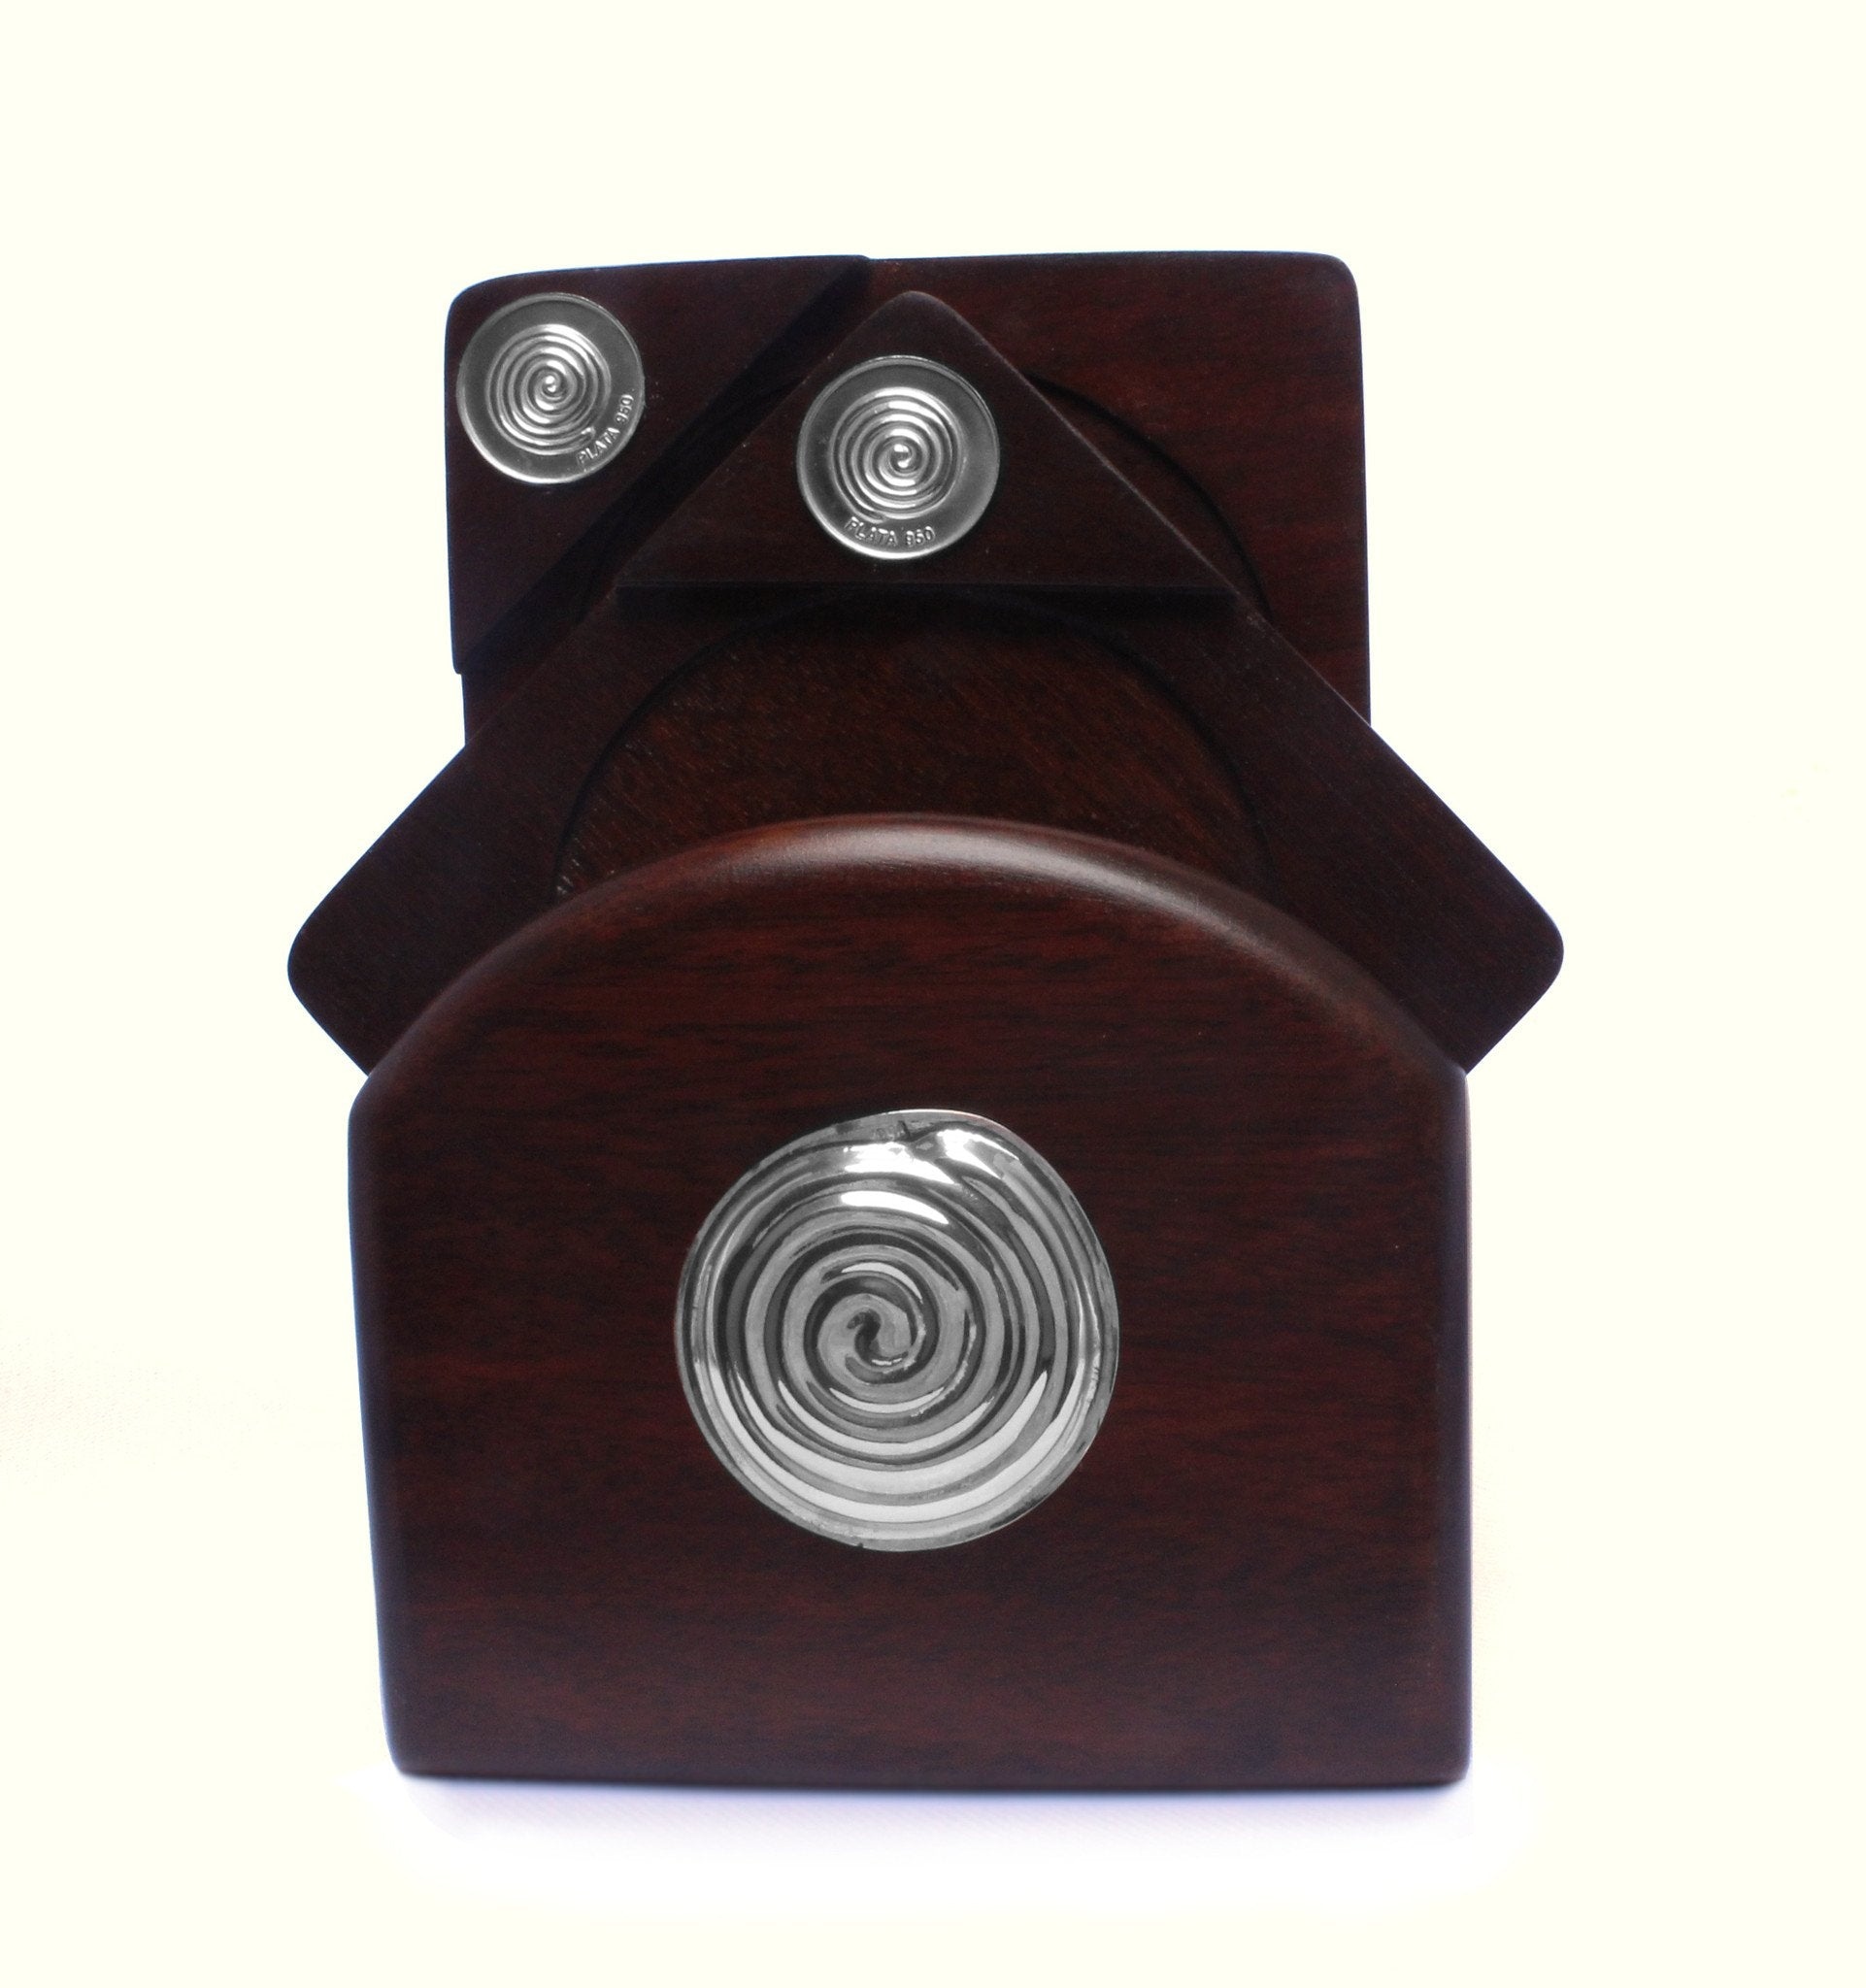 Mahogany Coasters with Sterling Silver SPIRAL Applique - Qinti - The Peruvian Shop